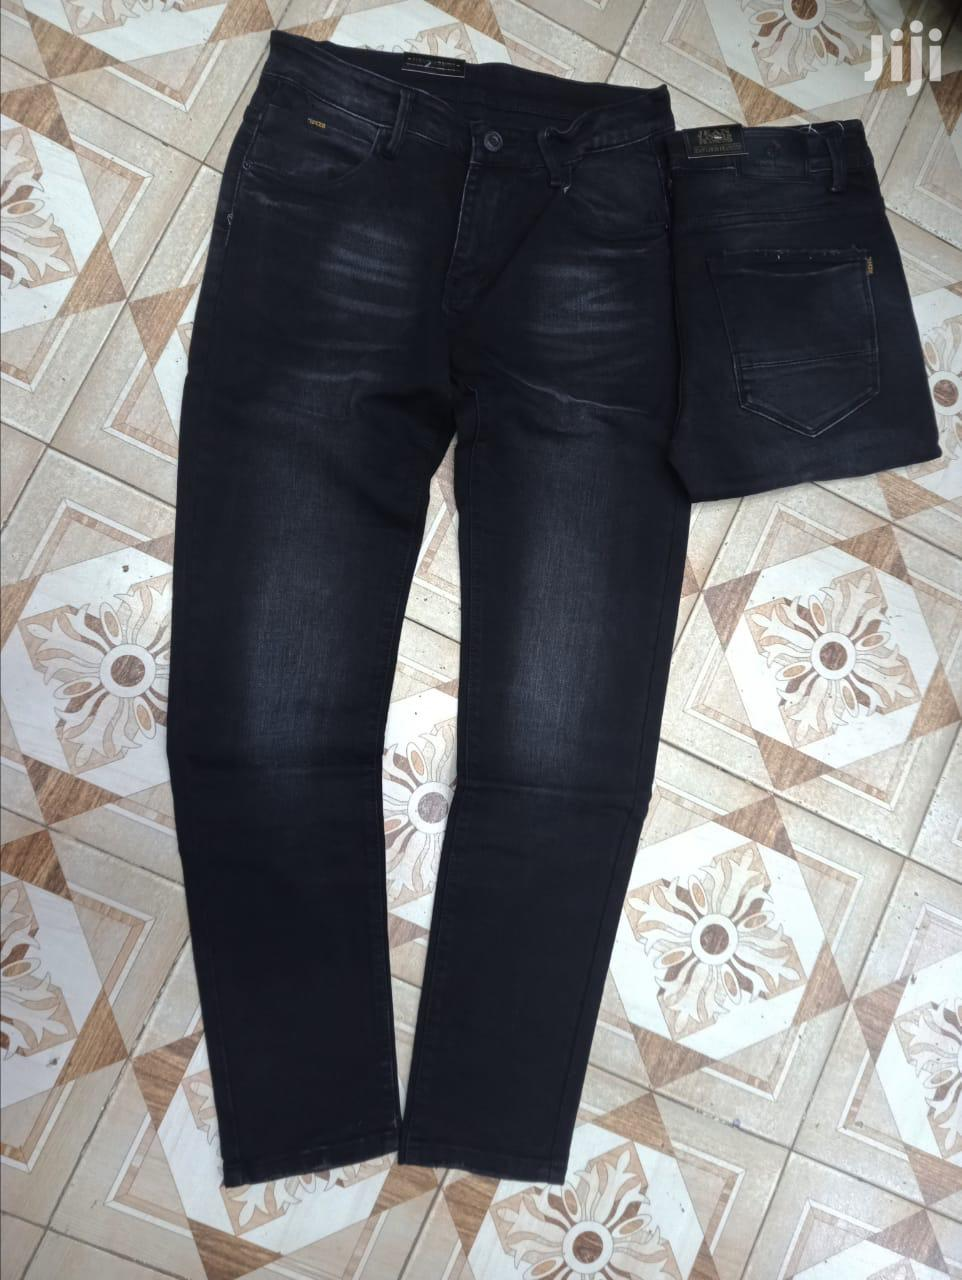 Men'S Jeans Available